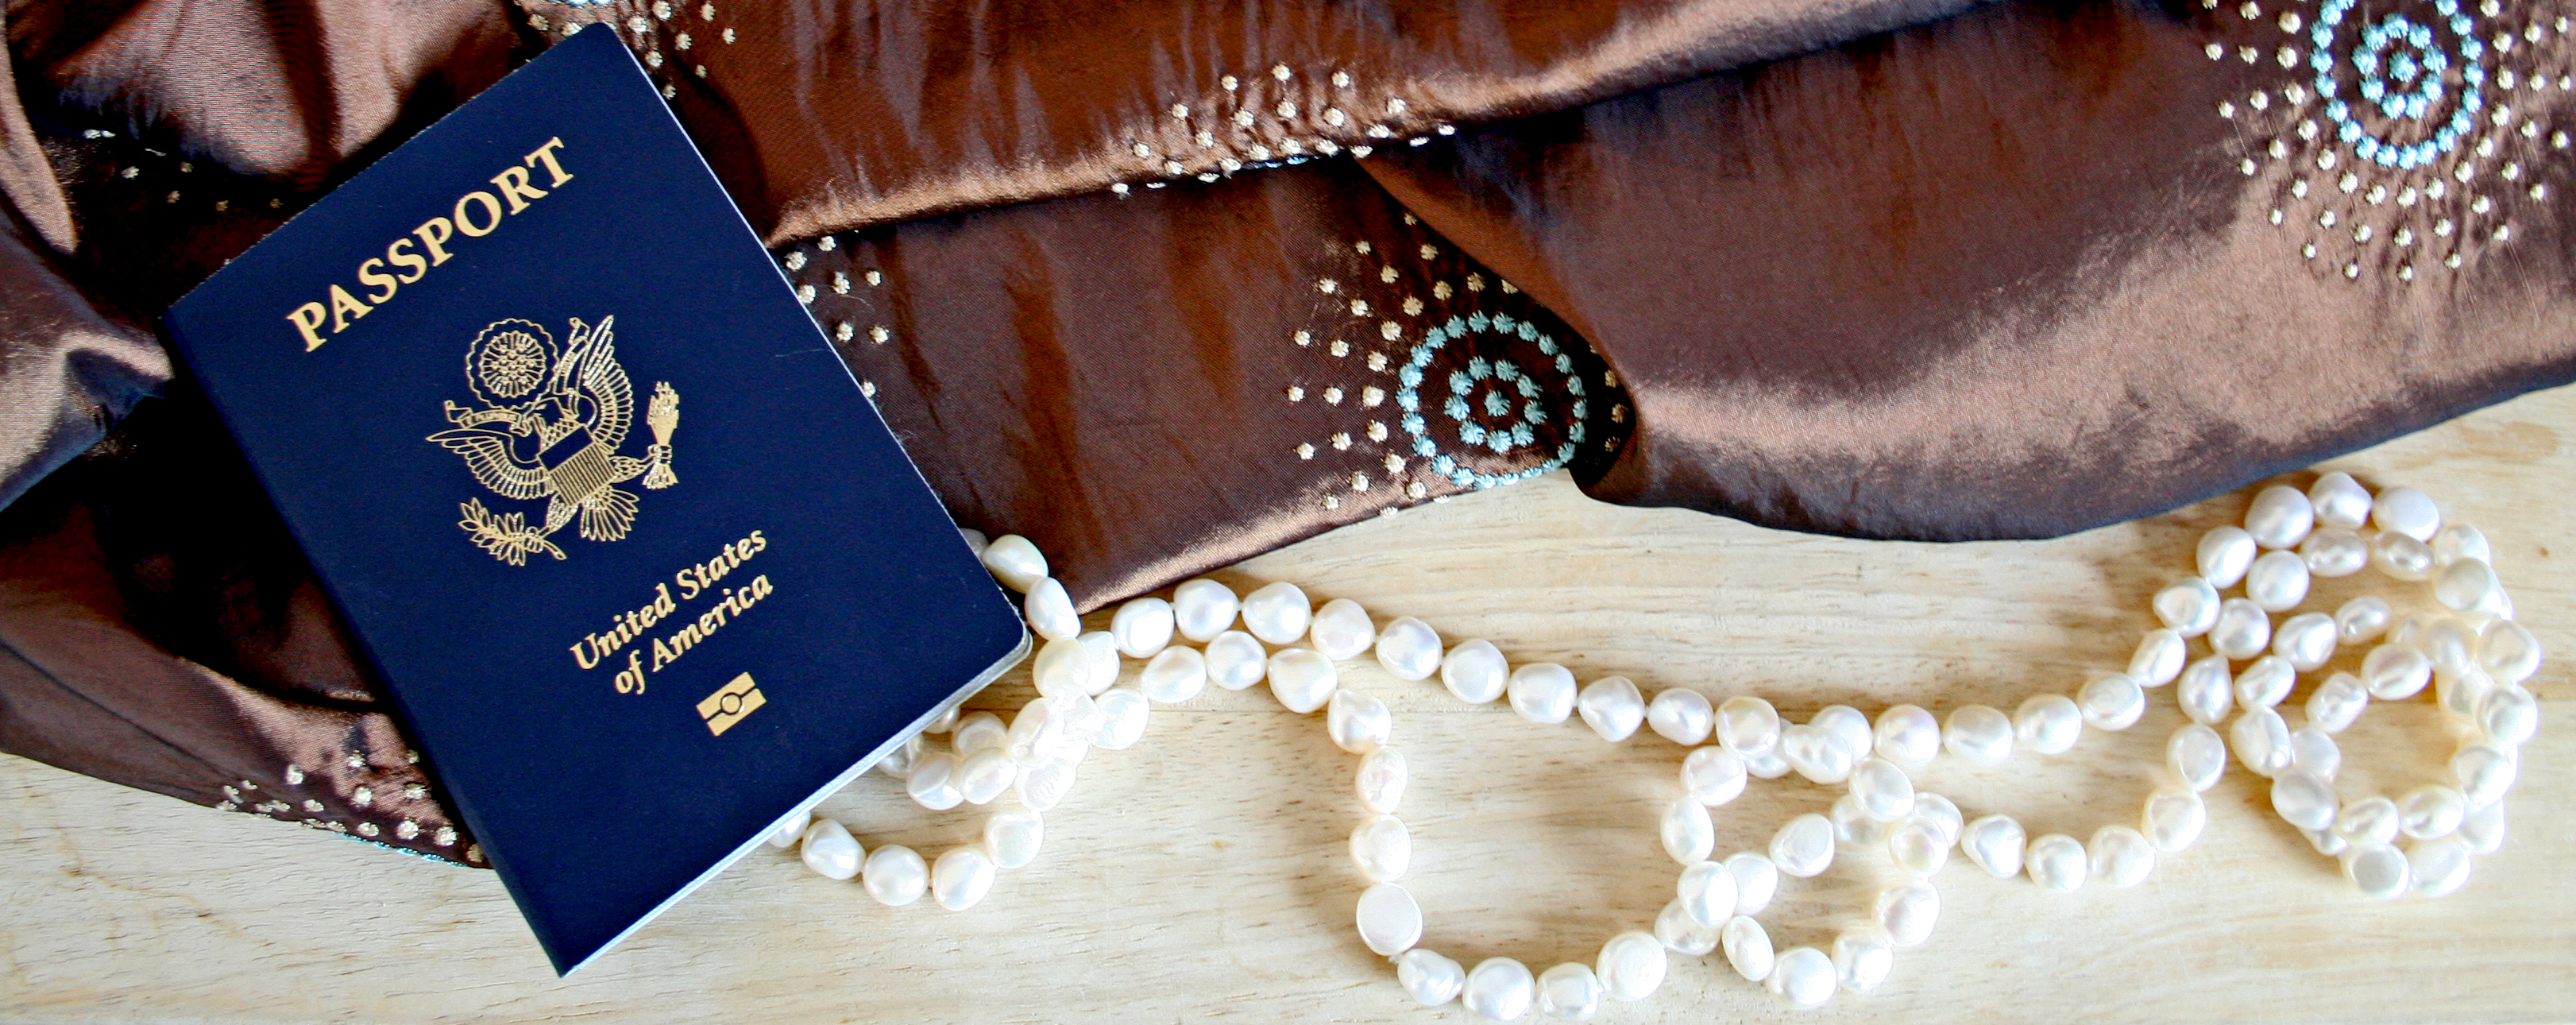 Passport and Pearls